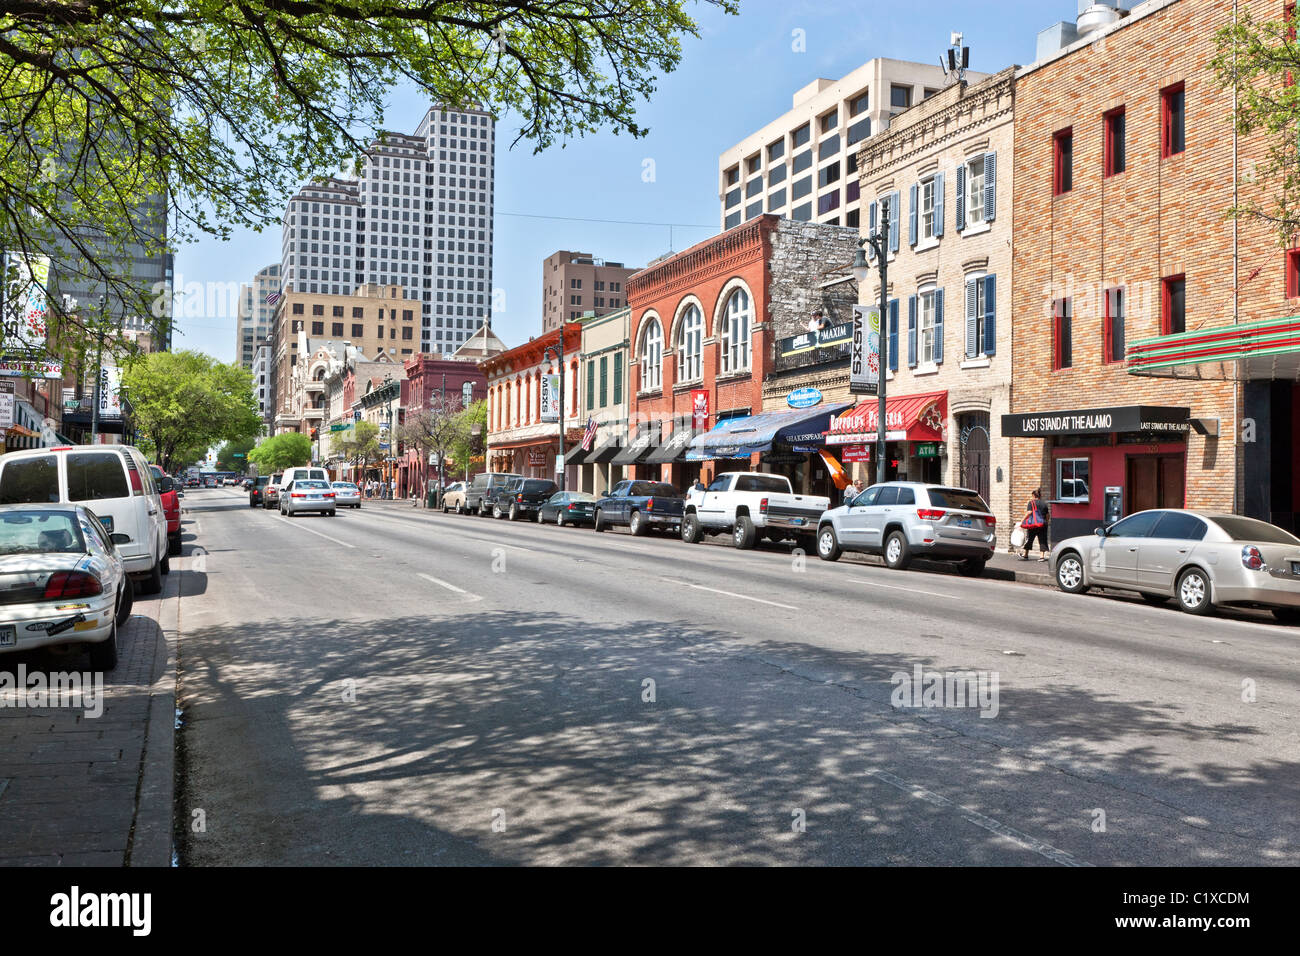 6th Street, Entertainment District, Austin - Stock Image